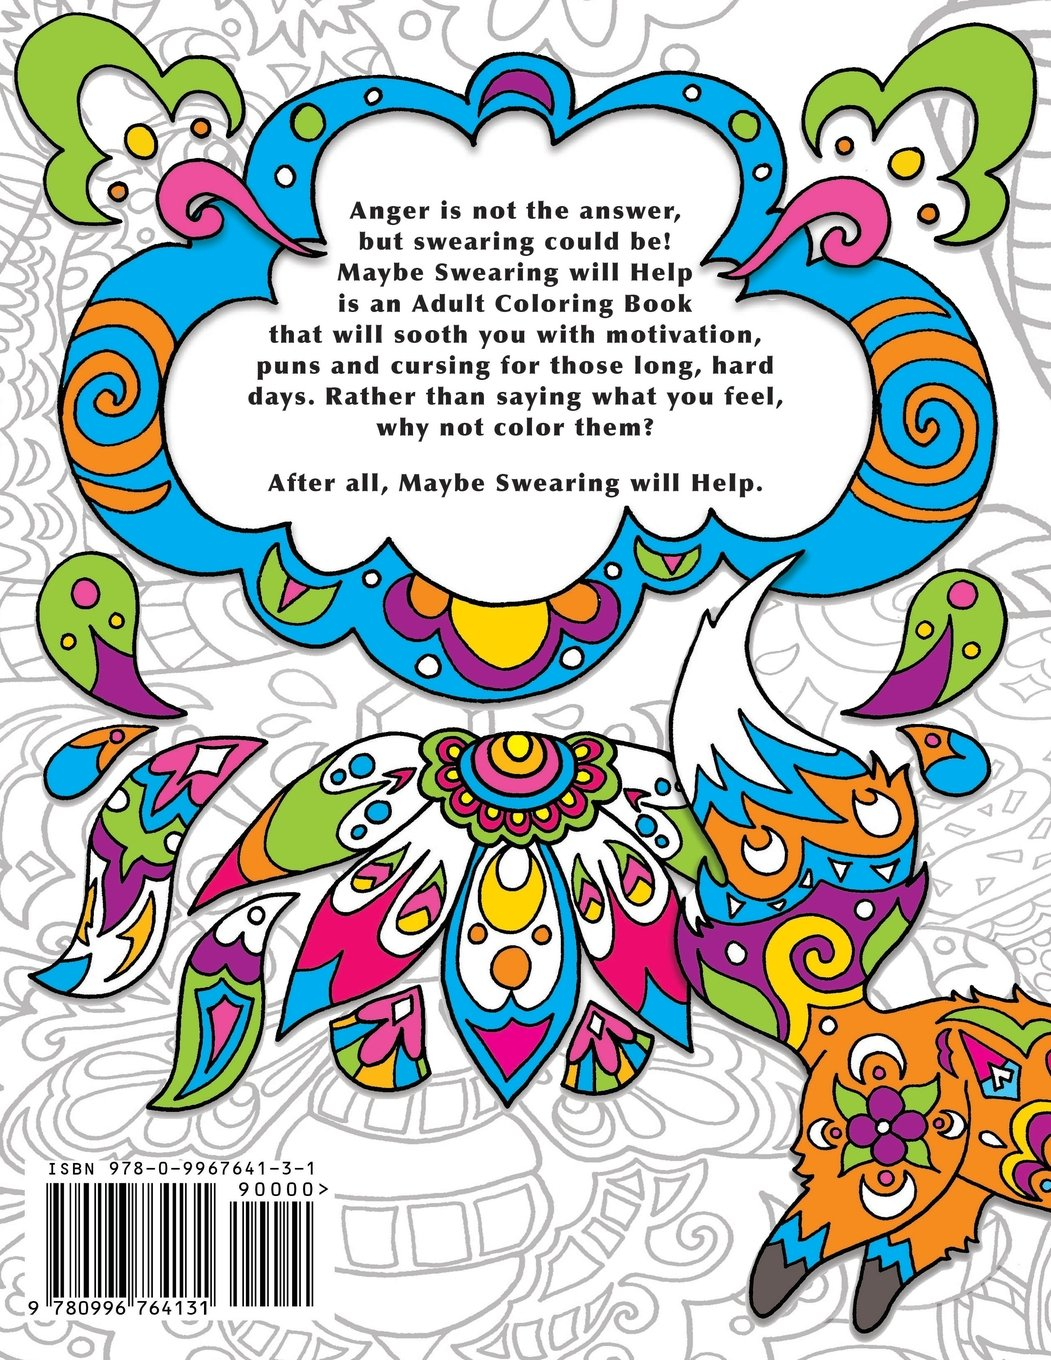 Amazon Maybe Swearing Will Help Adult Coloring Book 9780996764131 Nyx Spectrum Books